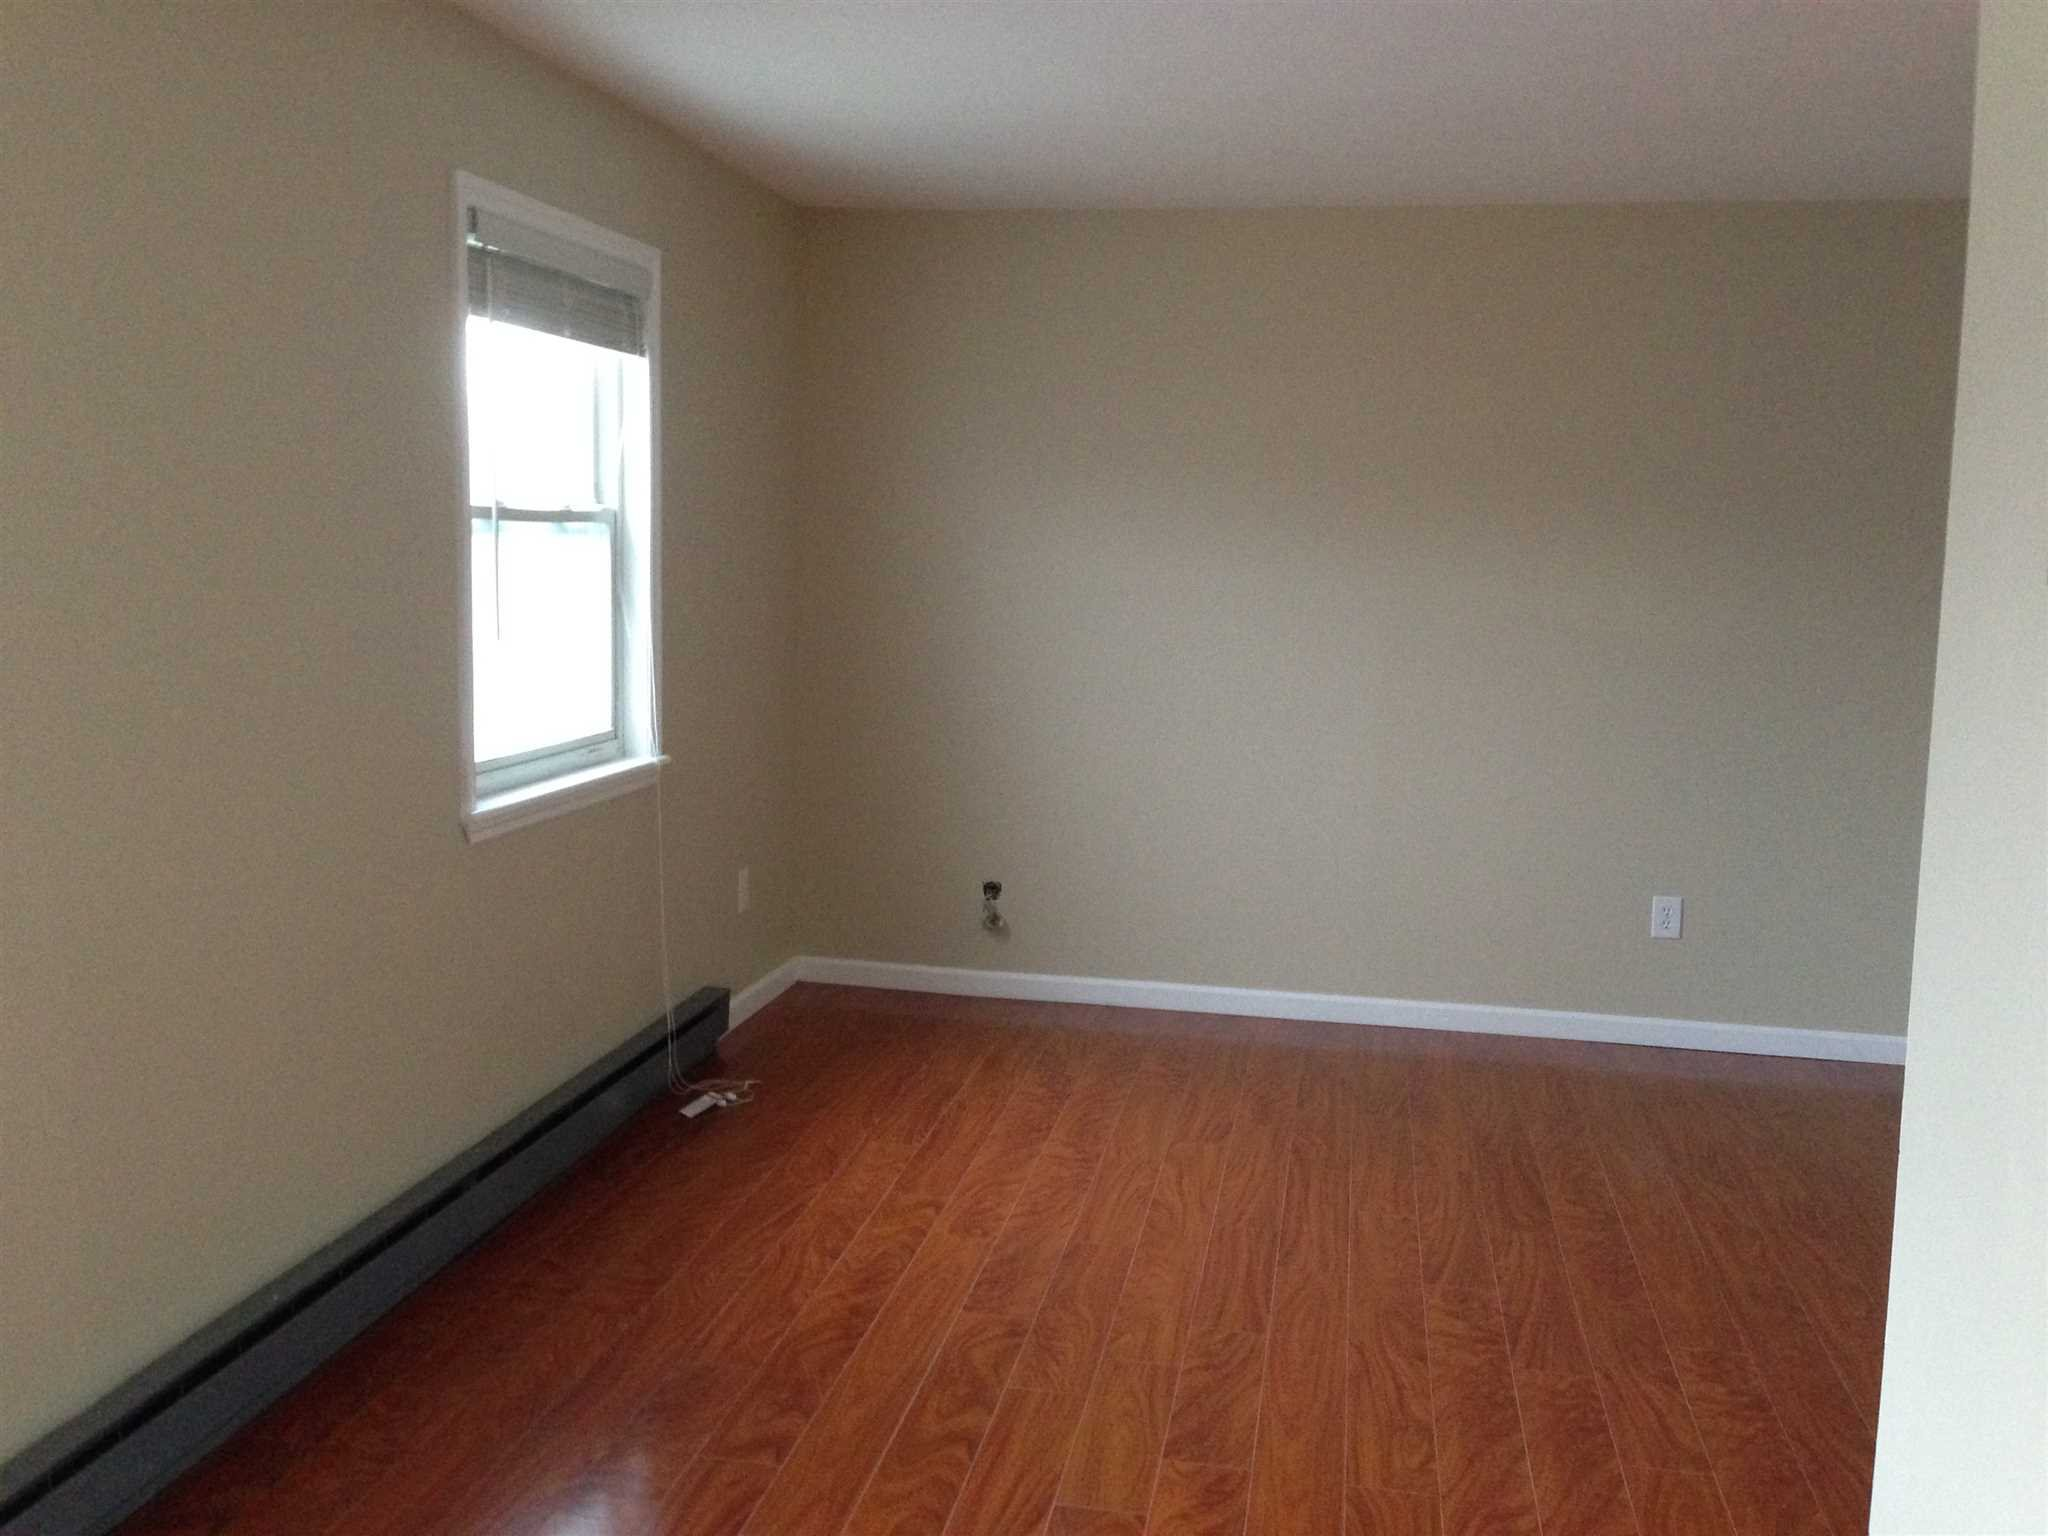 Co-op / Condo for Rent at WHITE GATE ROAD WHITE GATE ROAD Wappinger, New York 12590 United States